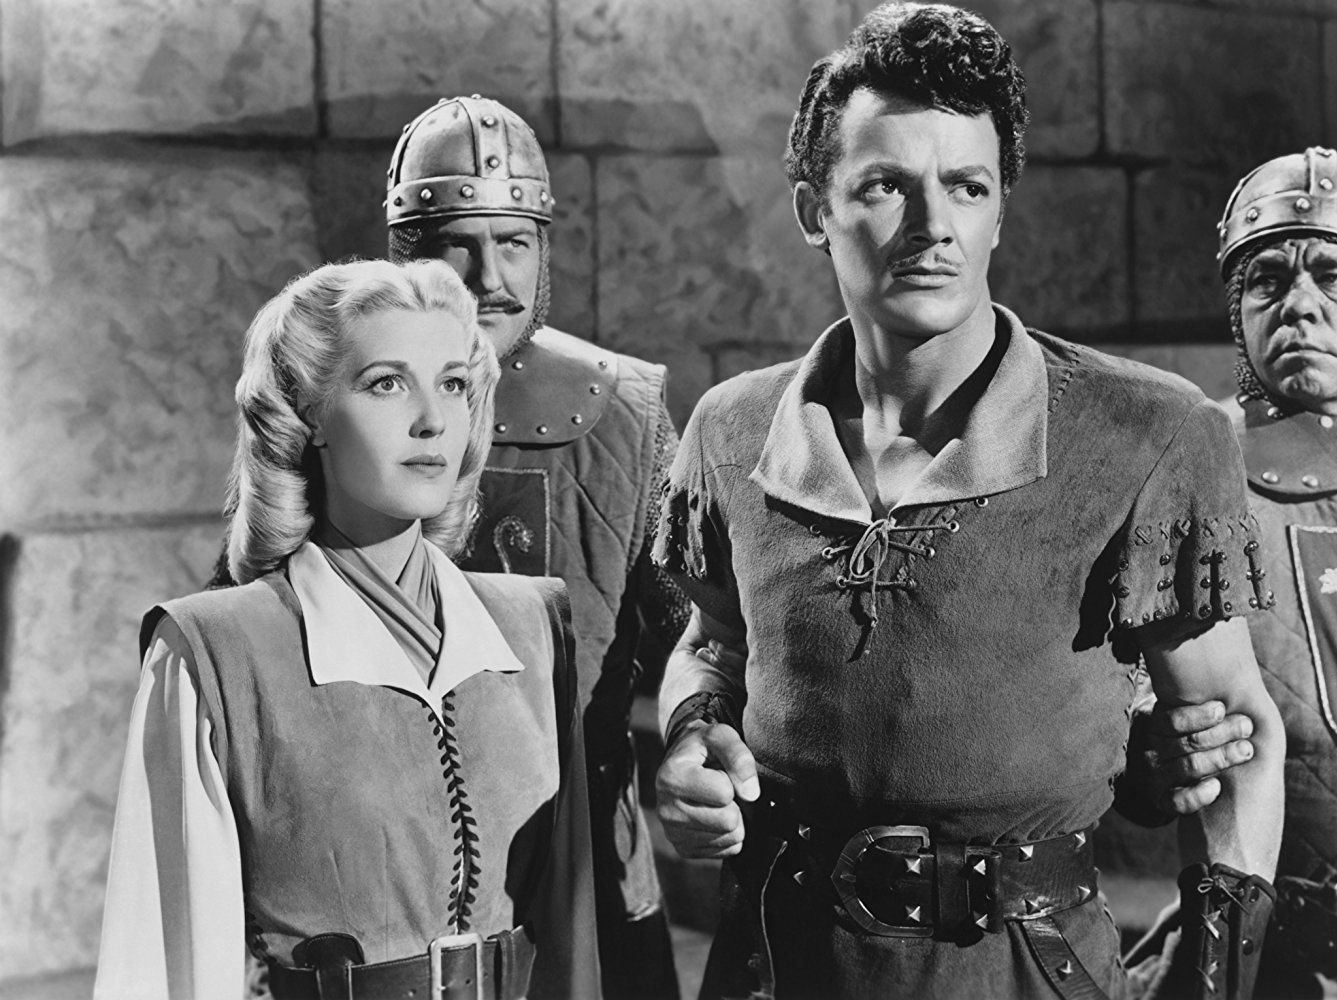 Anita Louise and Cornel Wilde in The Bandit of Sherwood Forest (1945)